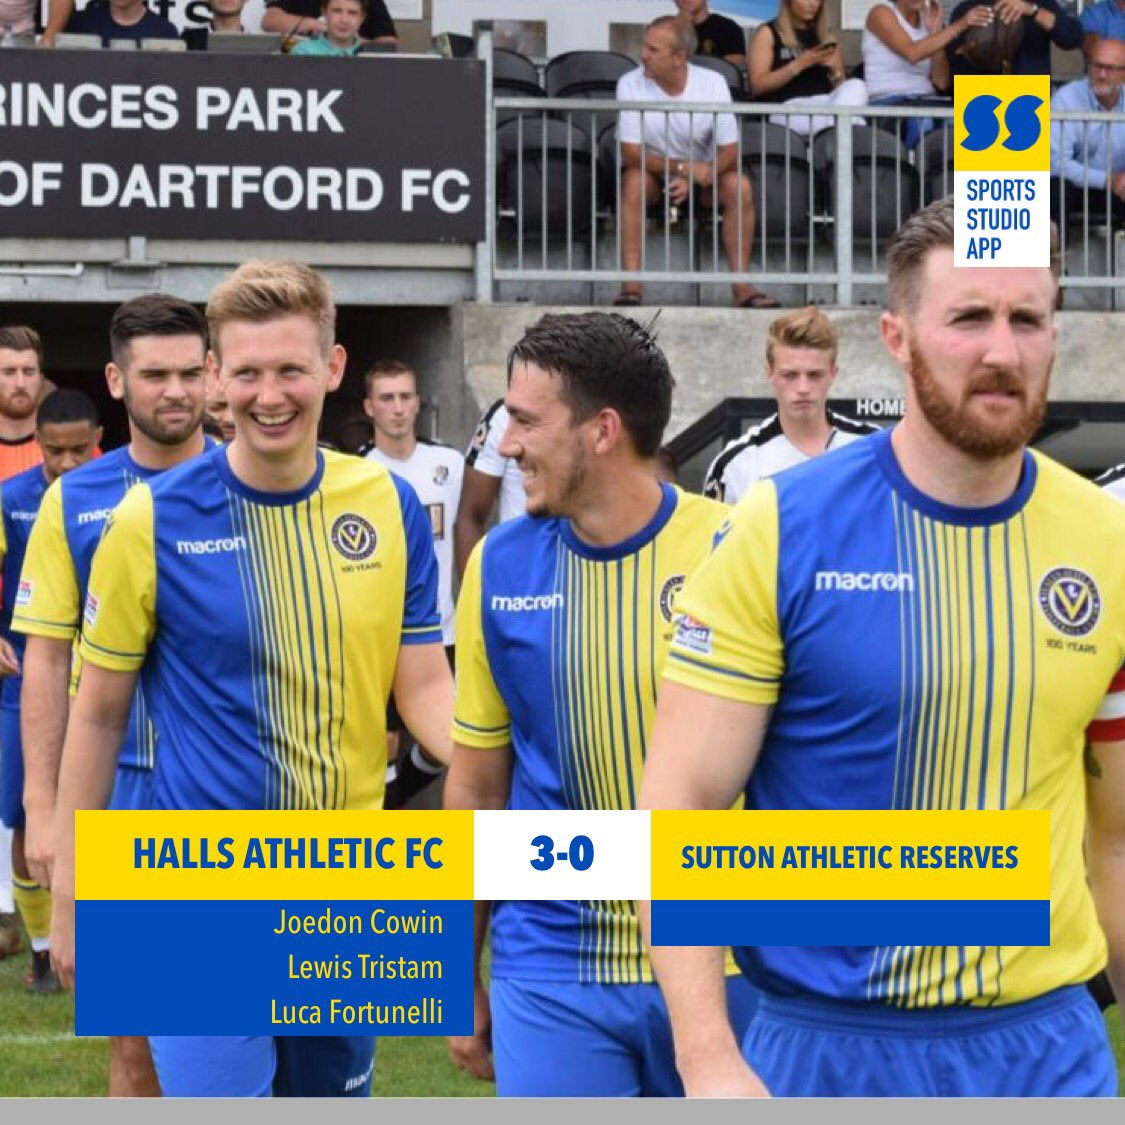 test Twitter Media - That makes it 6 wins on the bounce. Another professional performance in awful conditions! Another clean sheet to add which makes it 5 in 6. Goals from Joedon, @LewisTristram_  and Luca. MOM @LewisTristram_ 💛💙💛💙 #HAFC #100thseason https://t.co/8MwYMsC8Ek